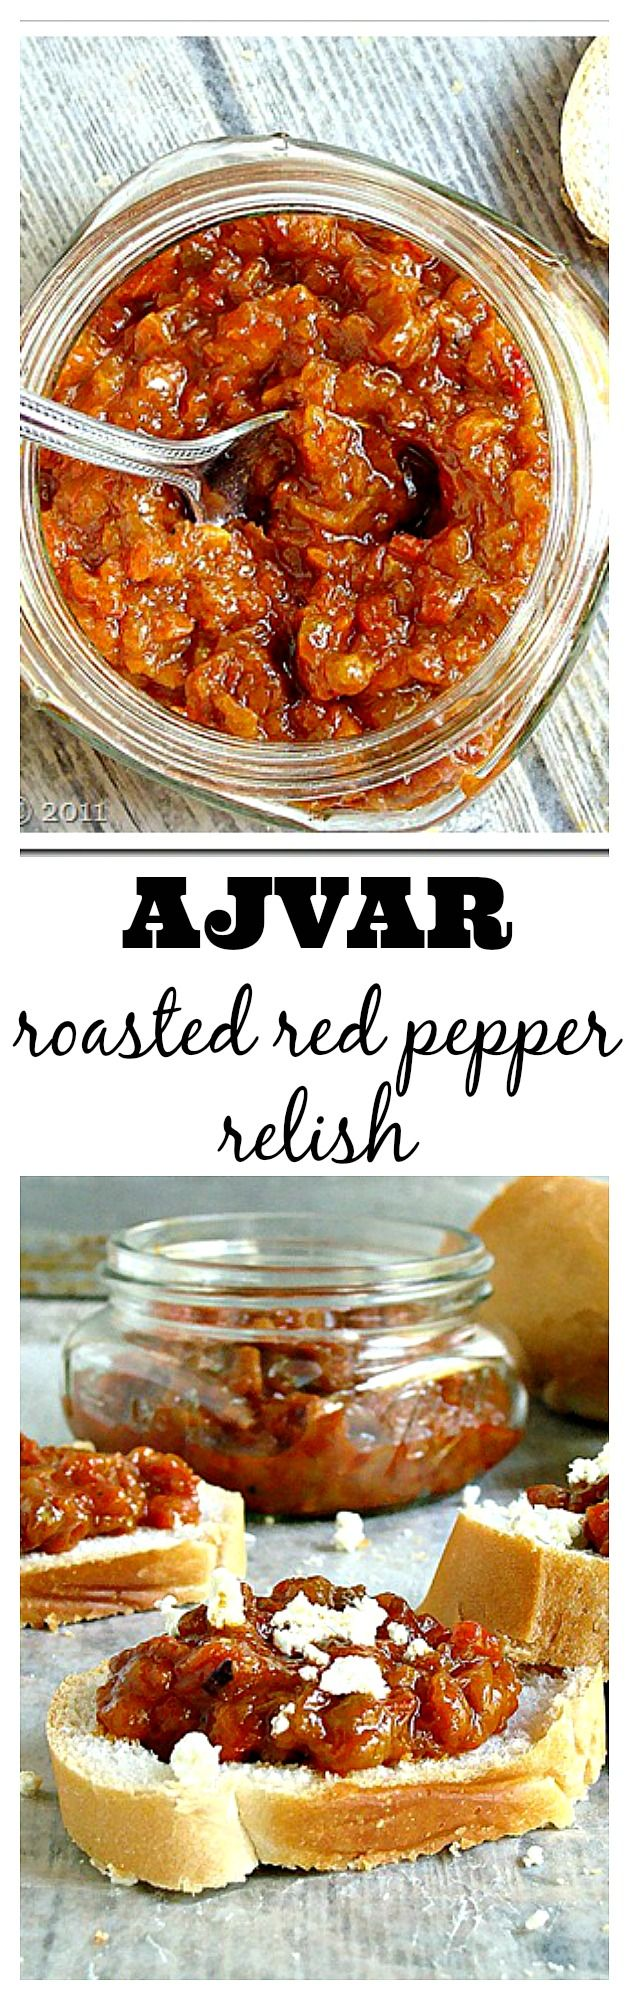 Ajvar (pronounced Ayvar) is an amazing red pepper spread from Macedonia. Get the recipe at diethood.com